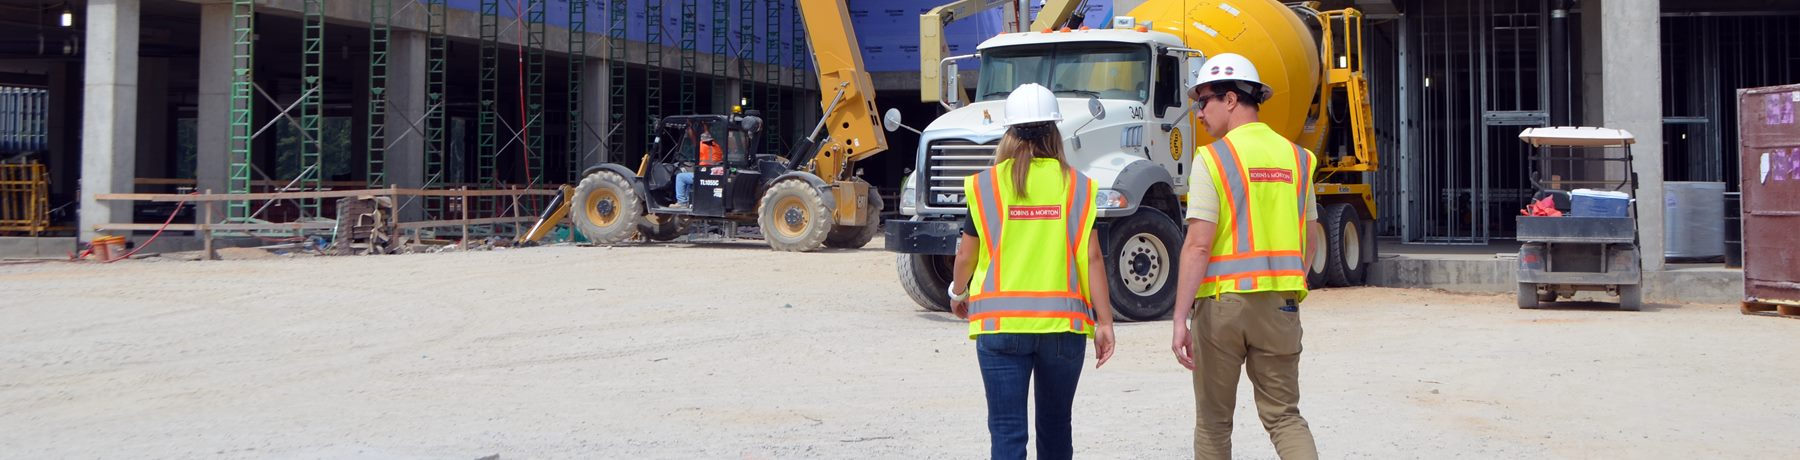 onsite a construction project